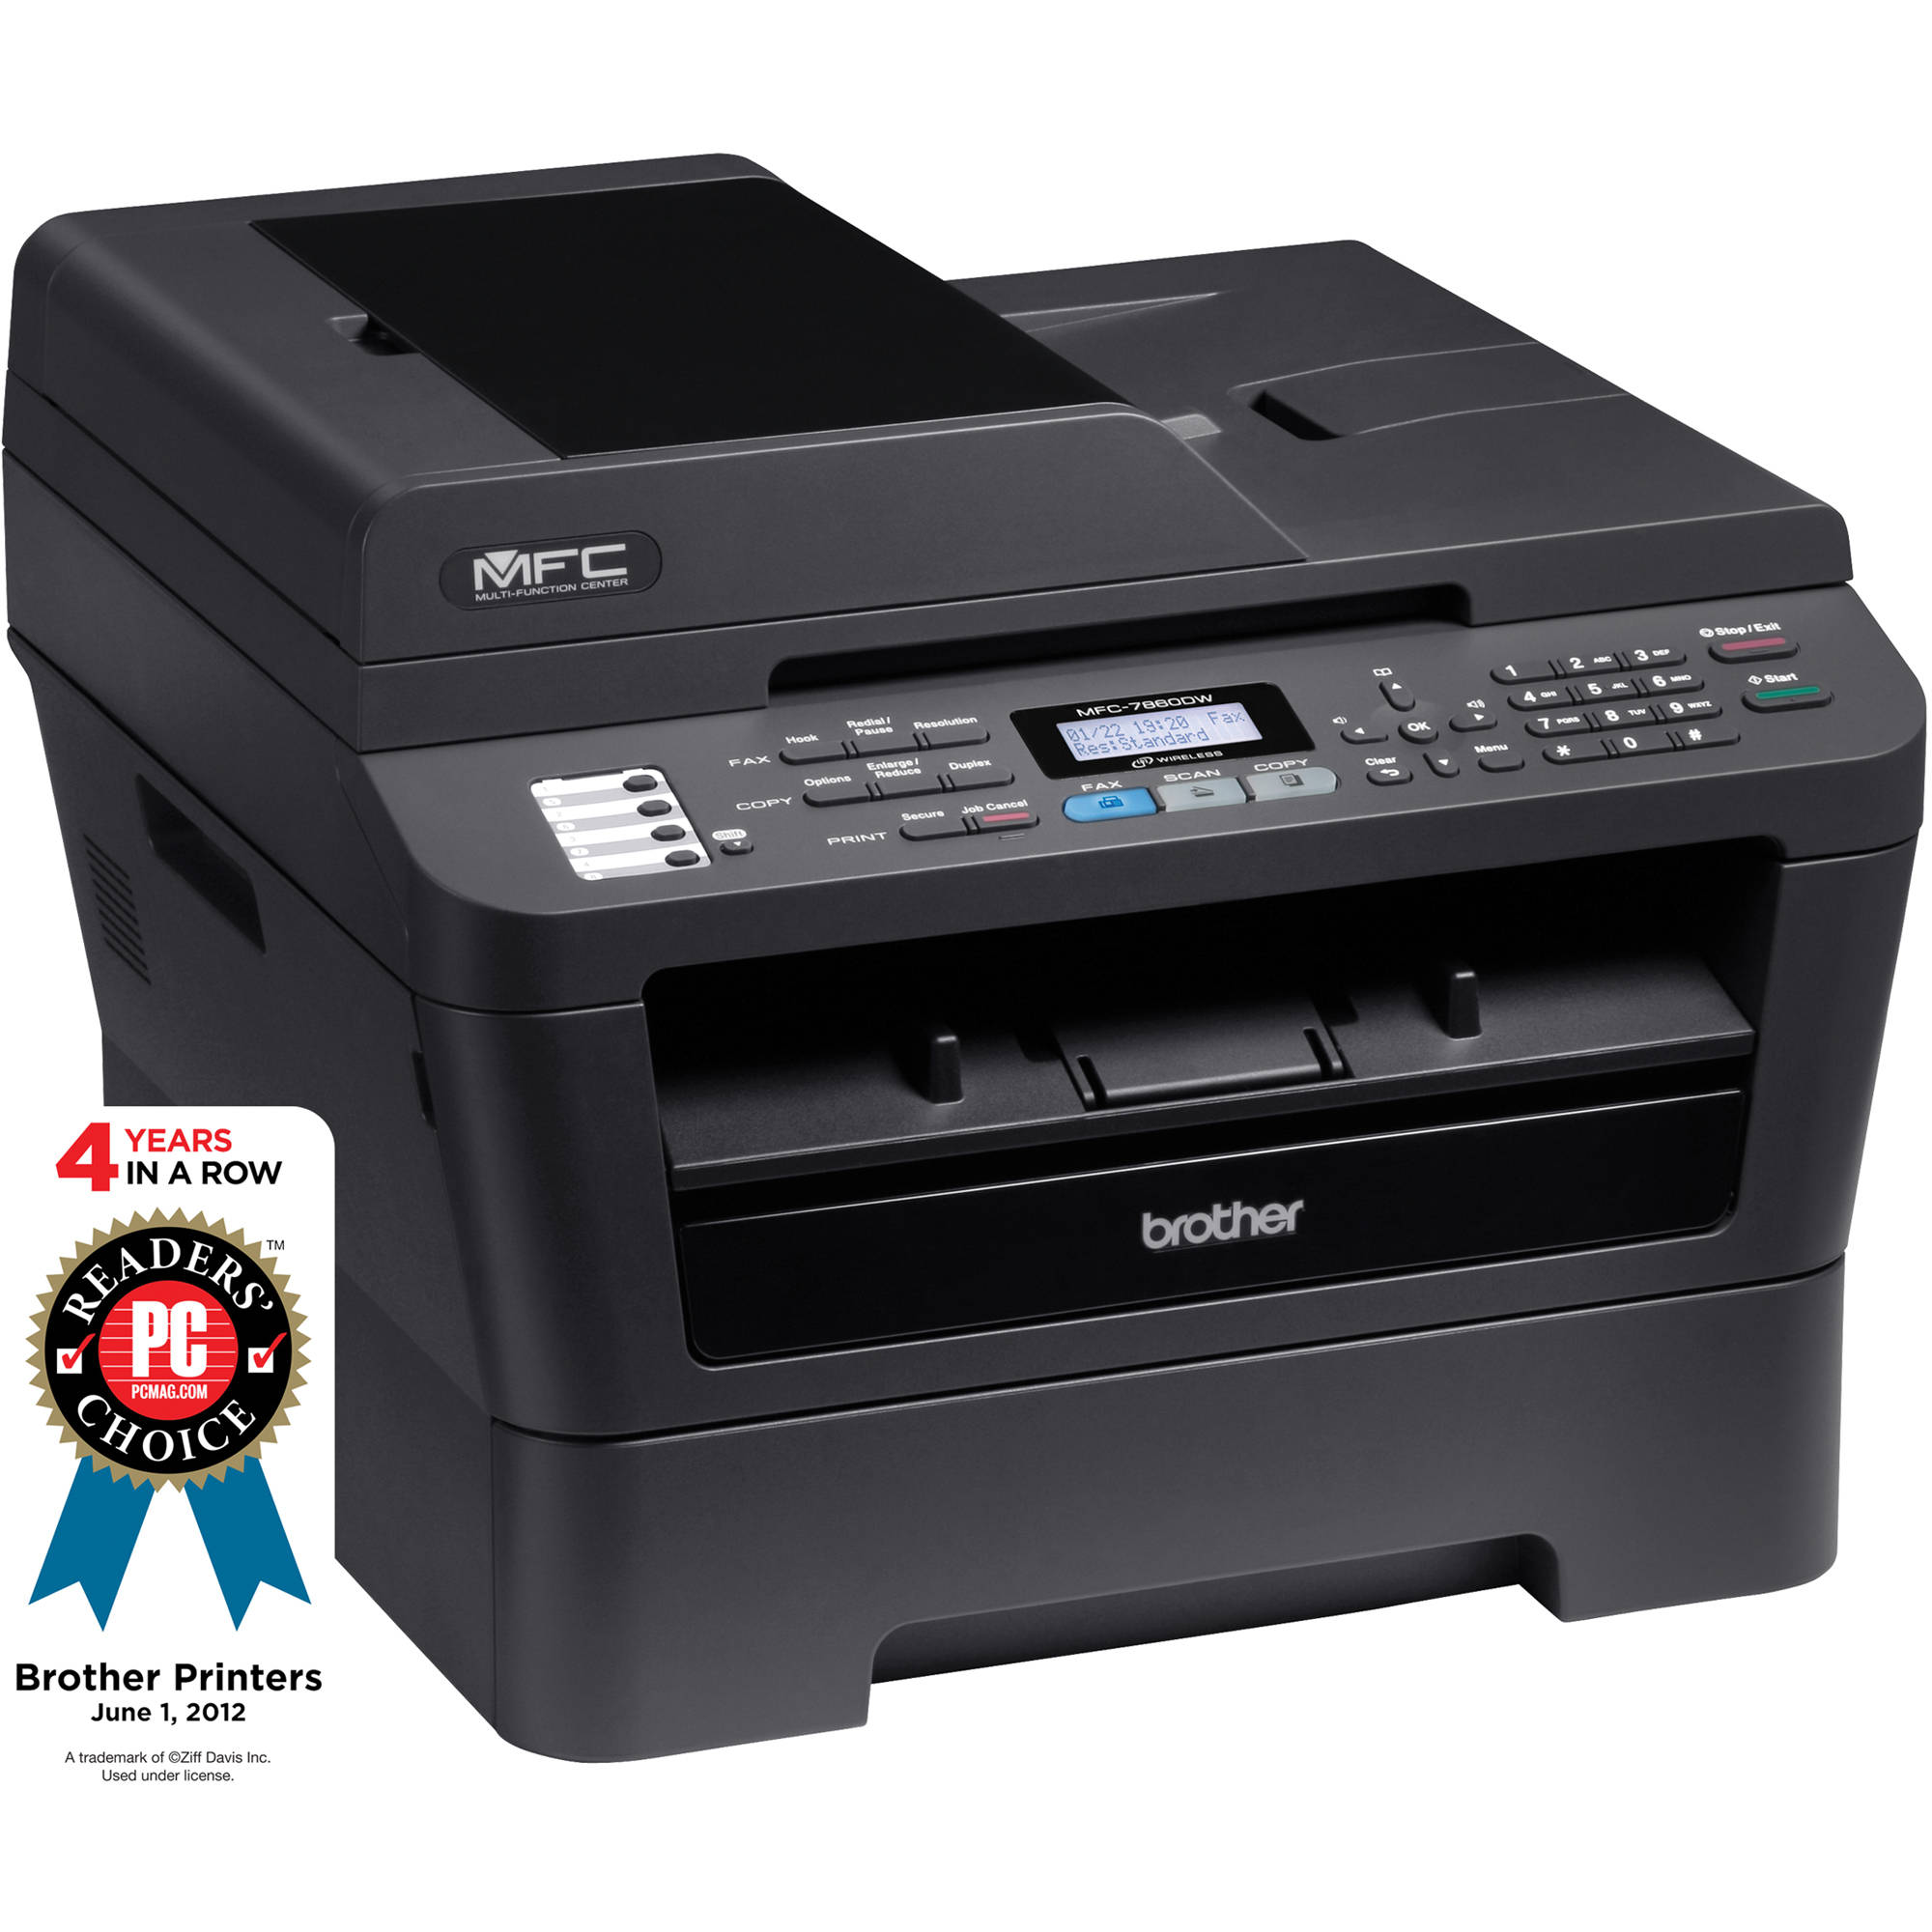 Driver UPDATE: Brother MFC-7860DW Printer/Scanner